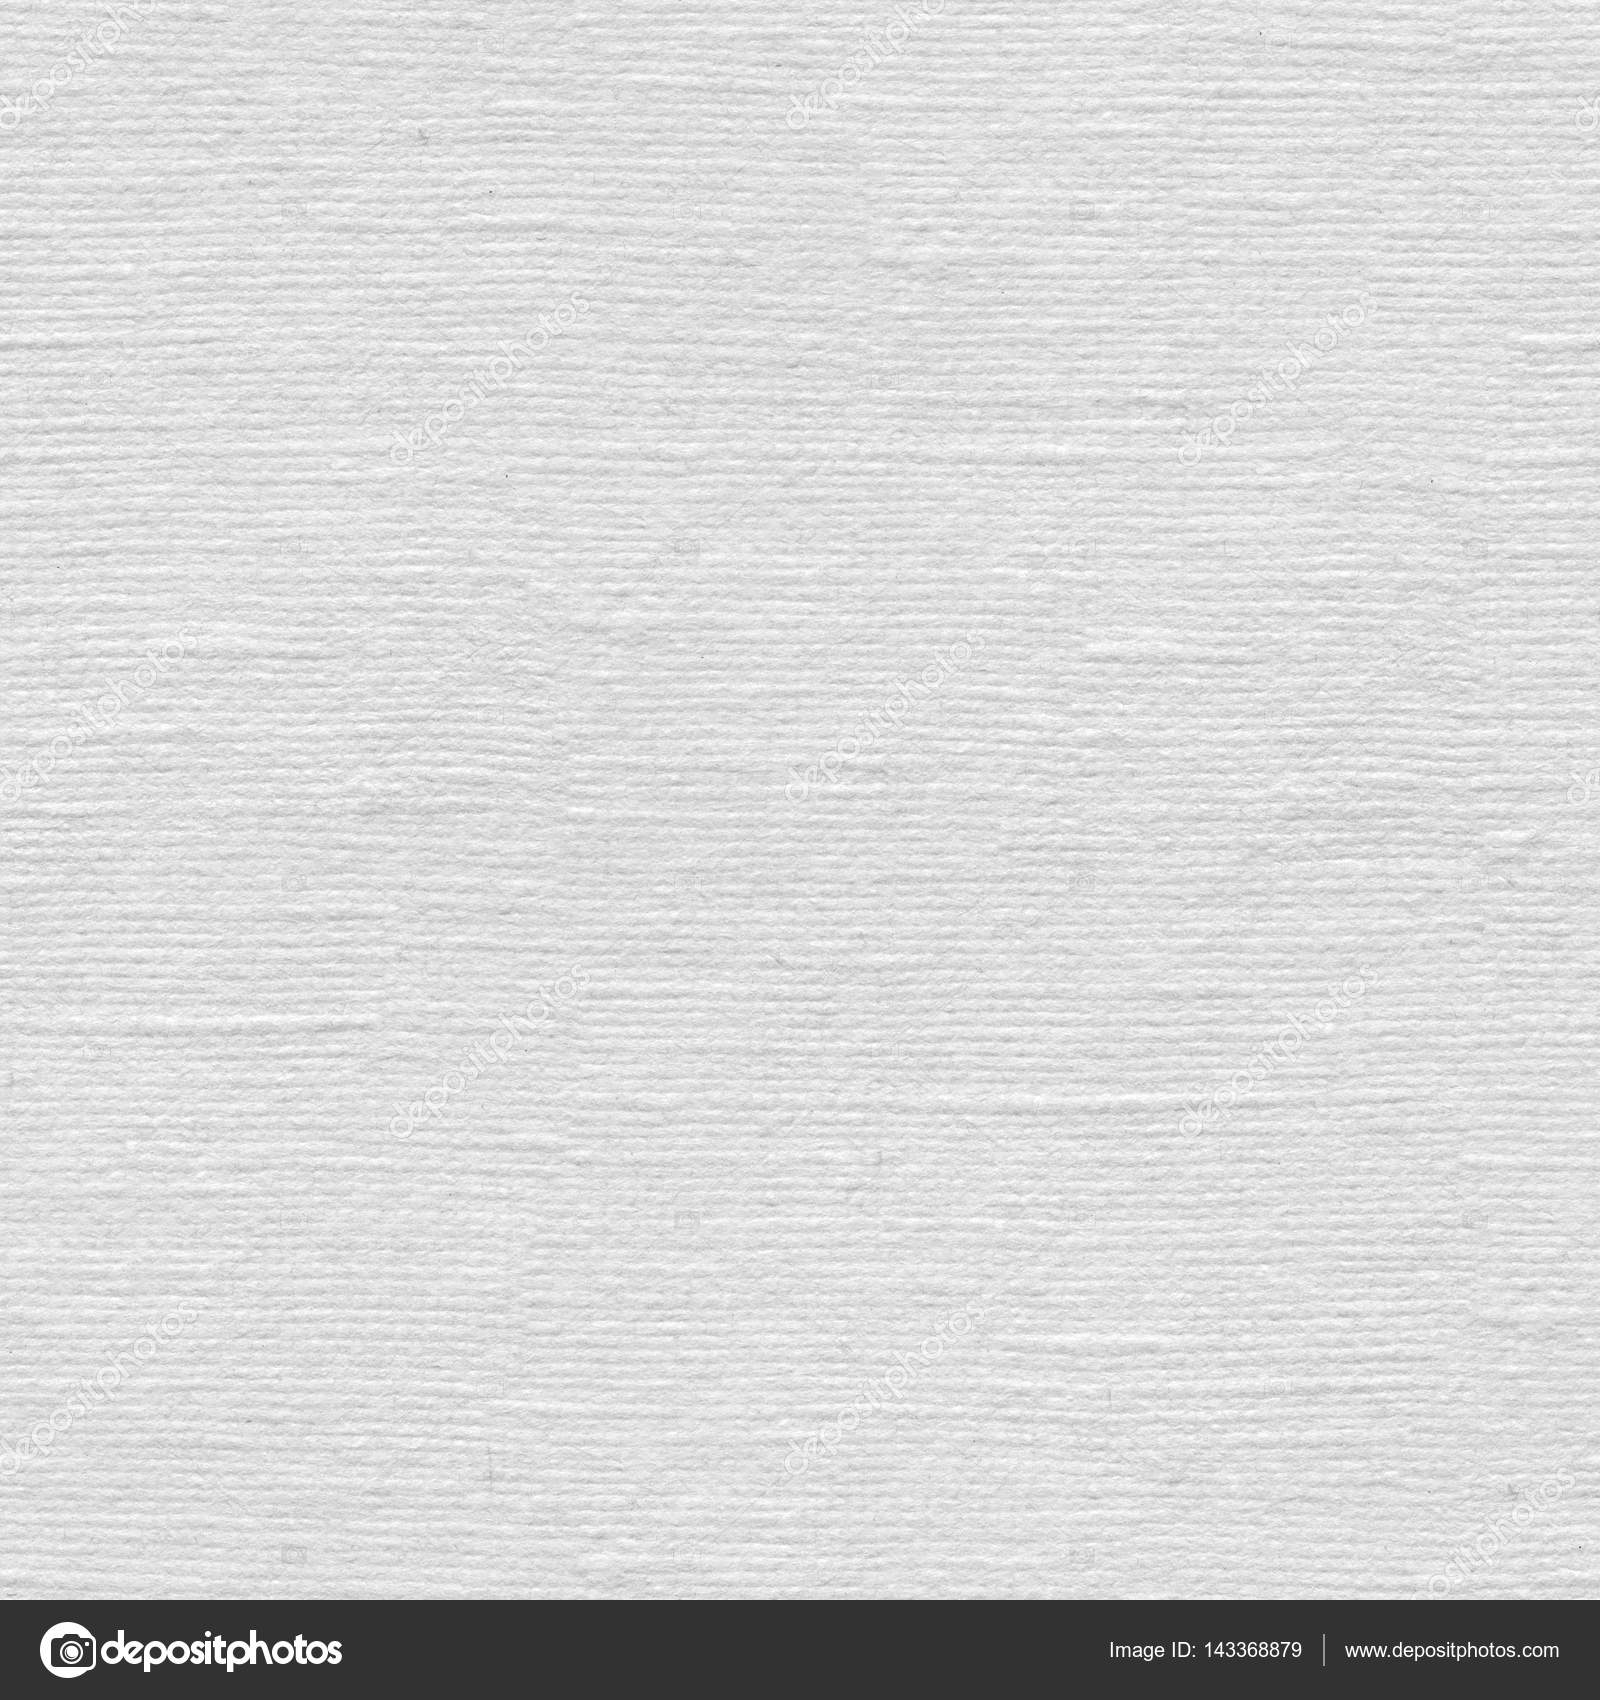 White Paper Texture Seamless Square Background Tile Ready High Quality In Extremely Resolution Photo By Yamabikay